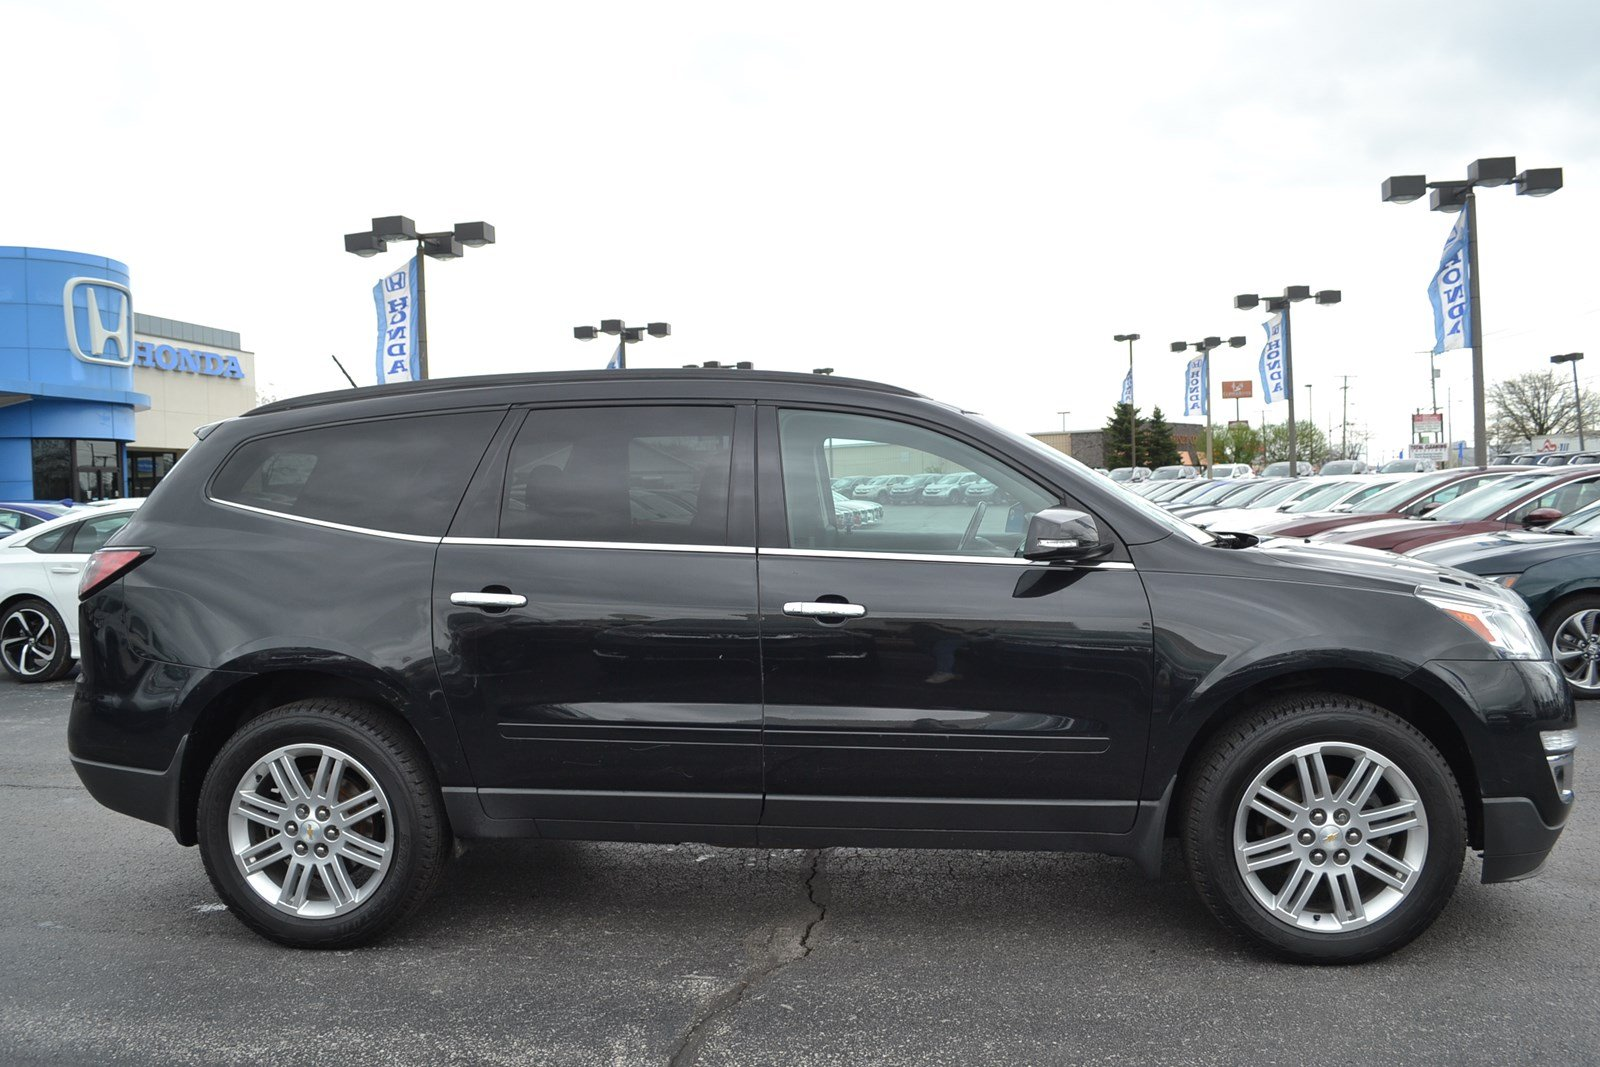 traverse suv carfax chevrolet park lt used orchard york vehicle new details automatic